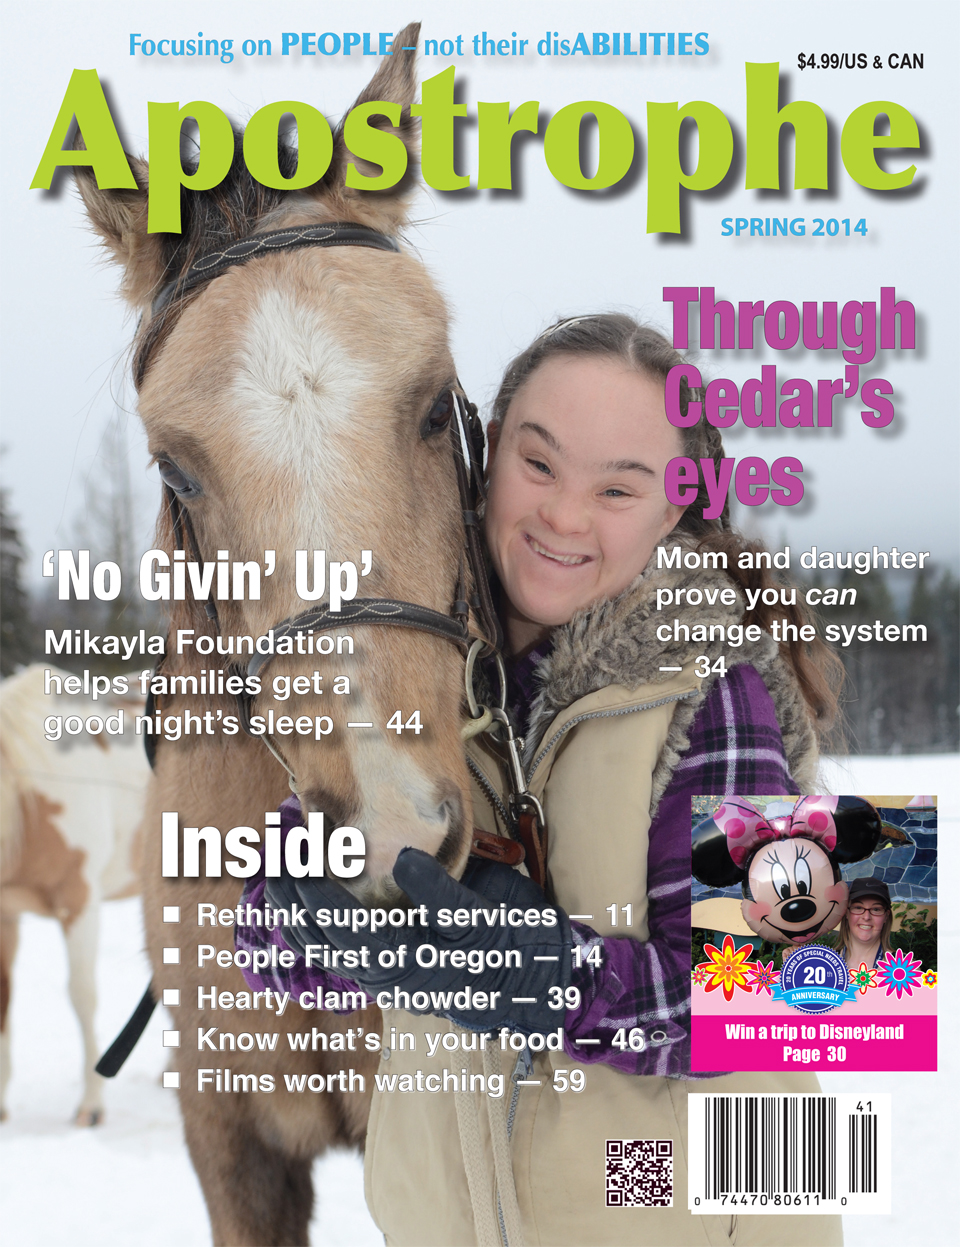 magazine articles or blog posts related to men and women with the help of disabilities